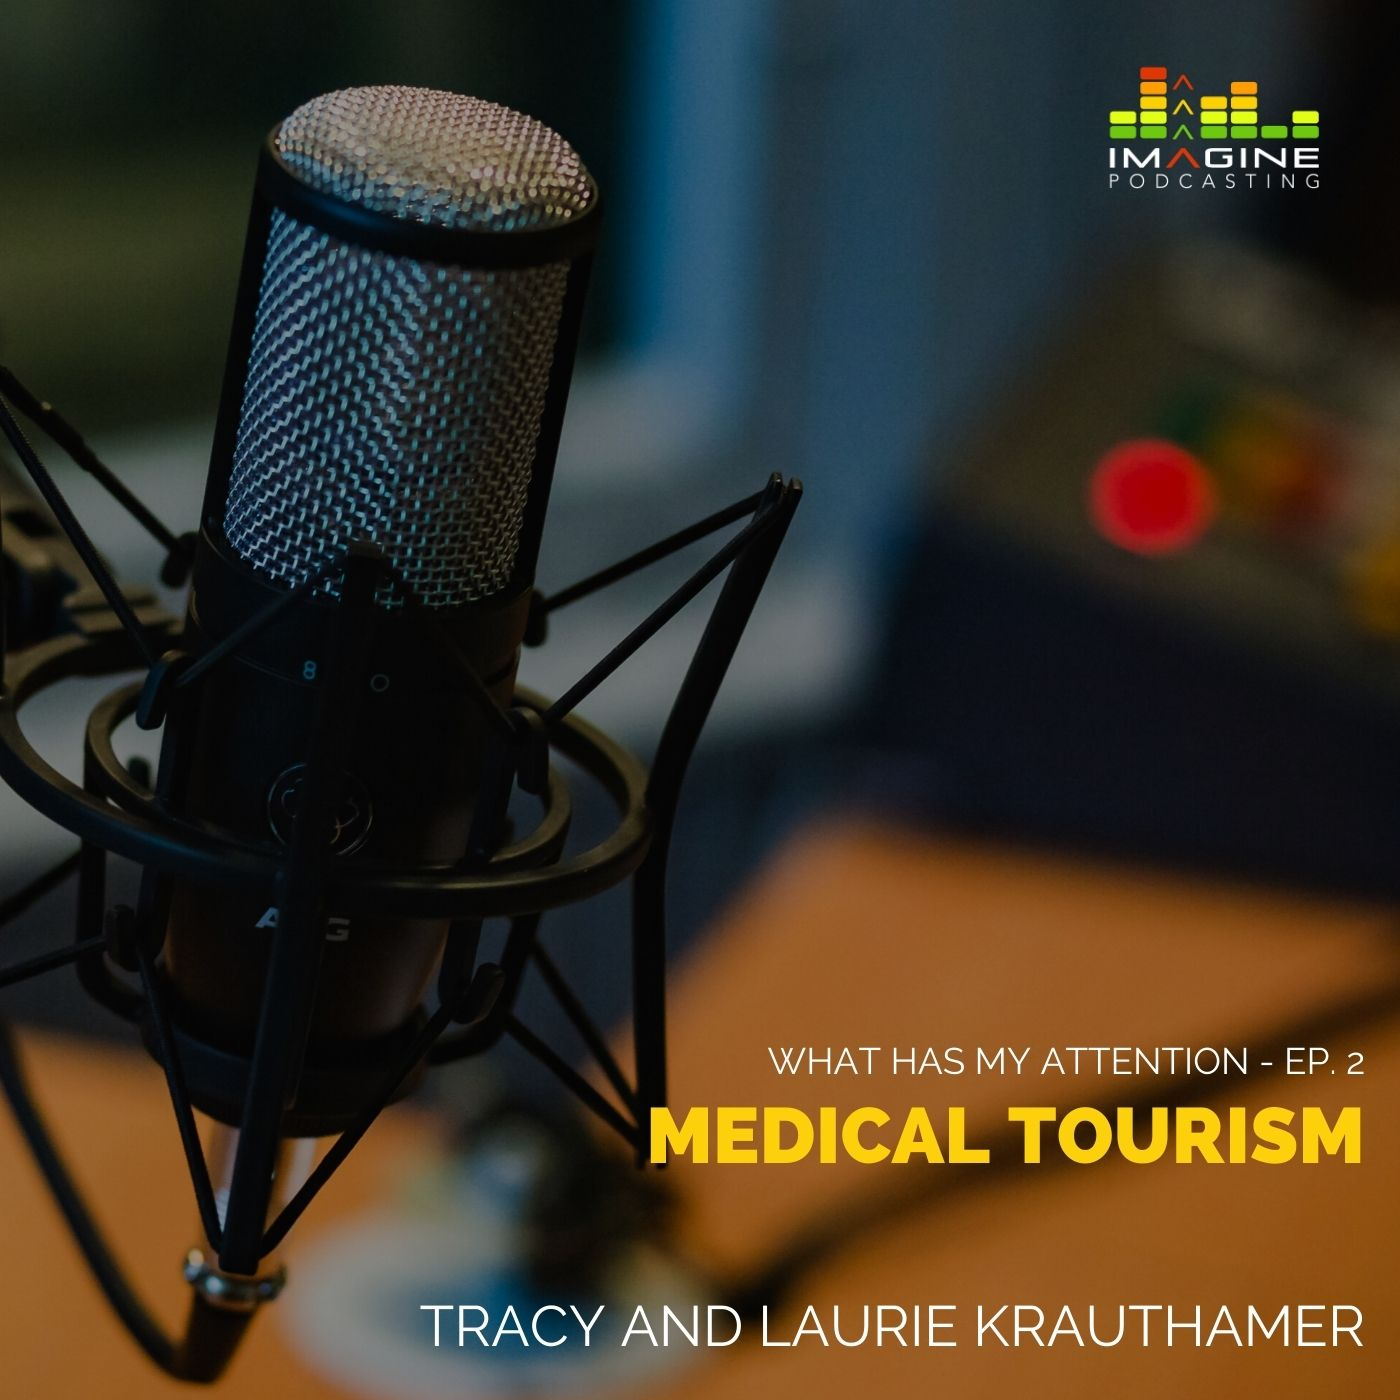 Ep. 2 Medical Tourism with Tracy and Laurie Krauthamer